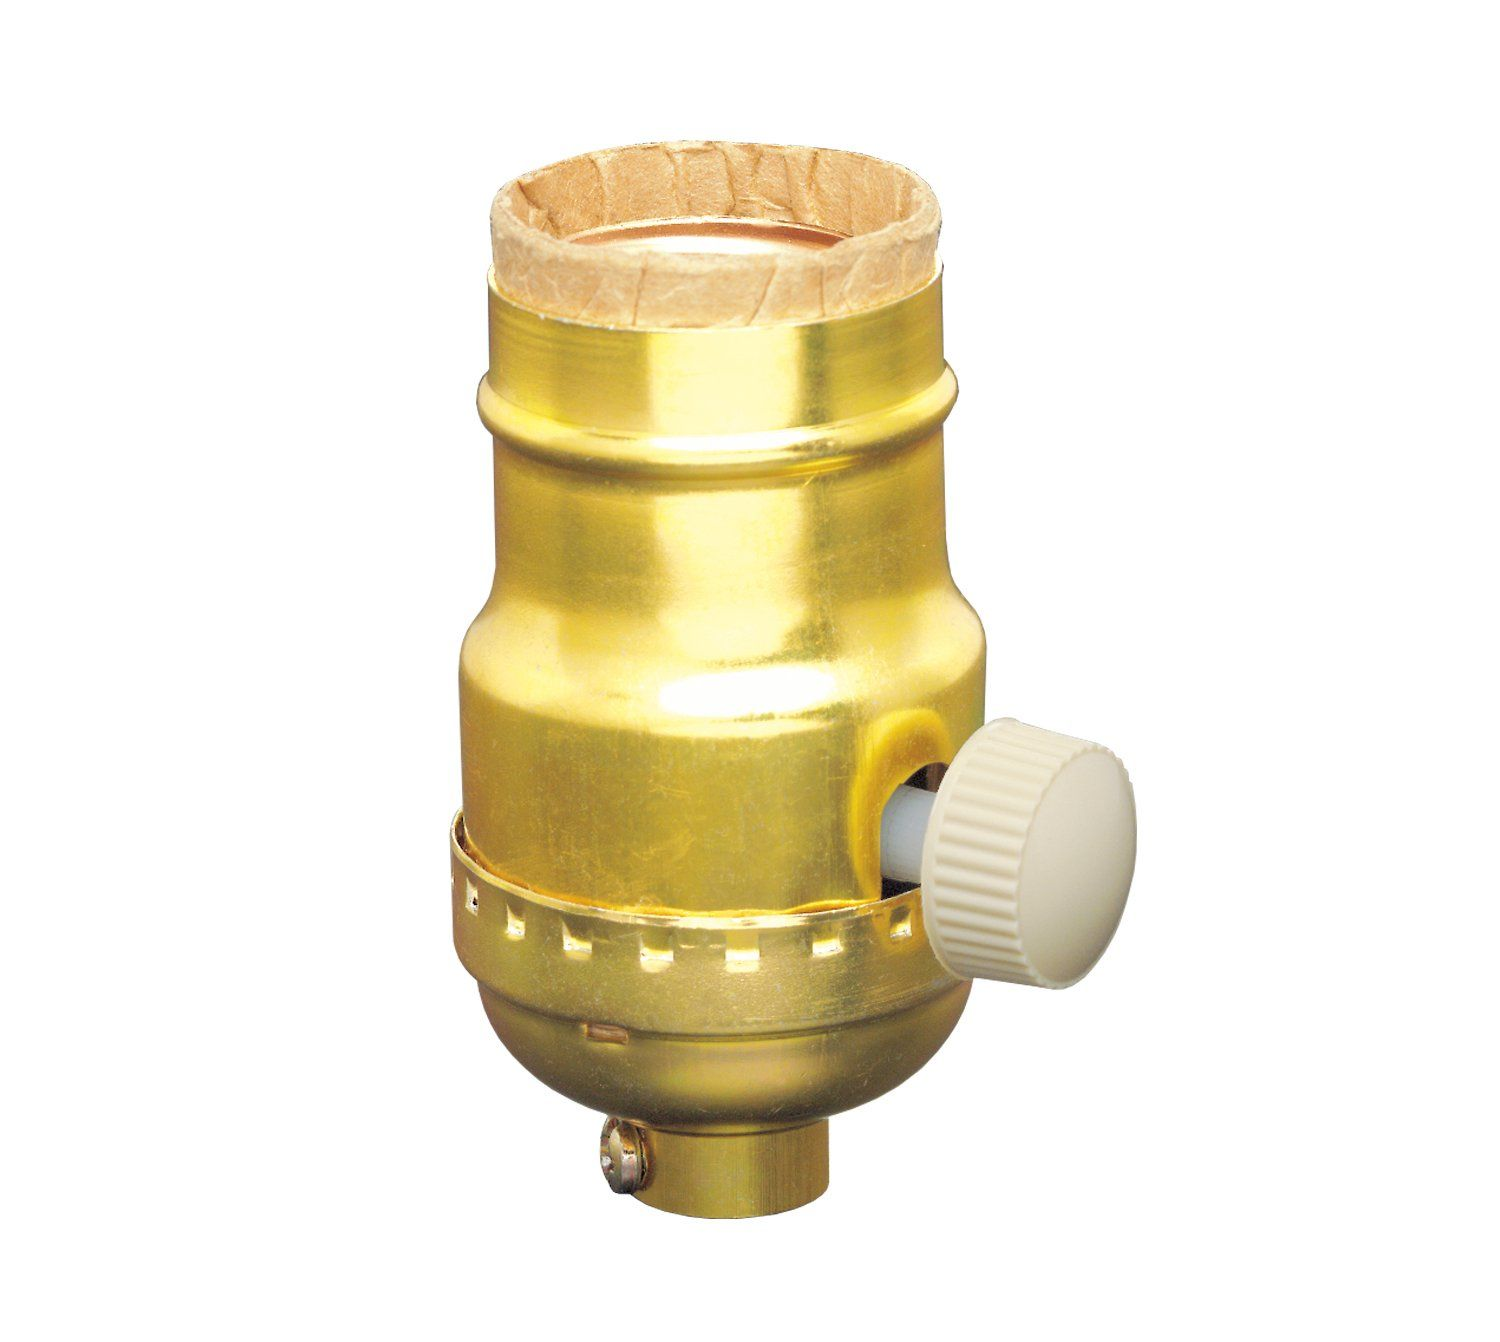 Leviton 6151 Incandescent Lamp Holder Socket Dimmer Metal Finish Brass Color Be Sure To Check Out This Awesome P Incandescent Lamp Lamp Holder Standard Lamps